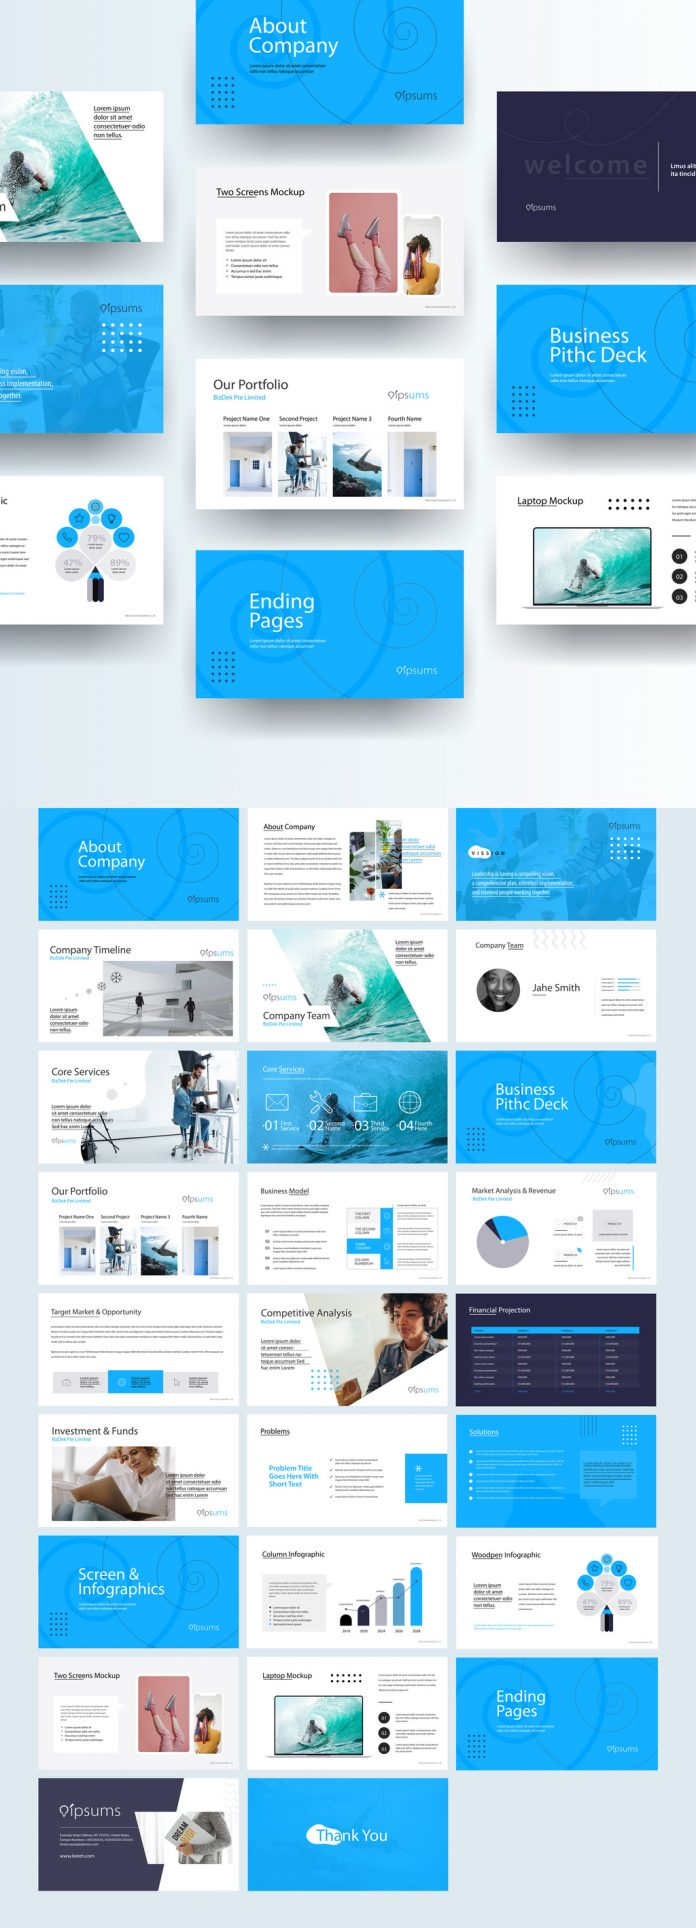 Business Pitch Deck Presentation Layout with Blue Accents